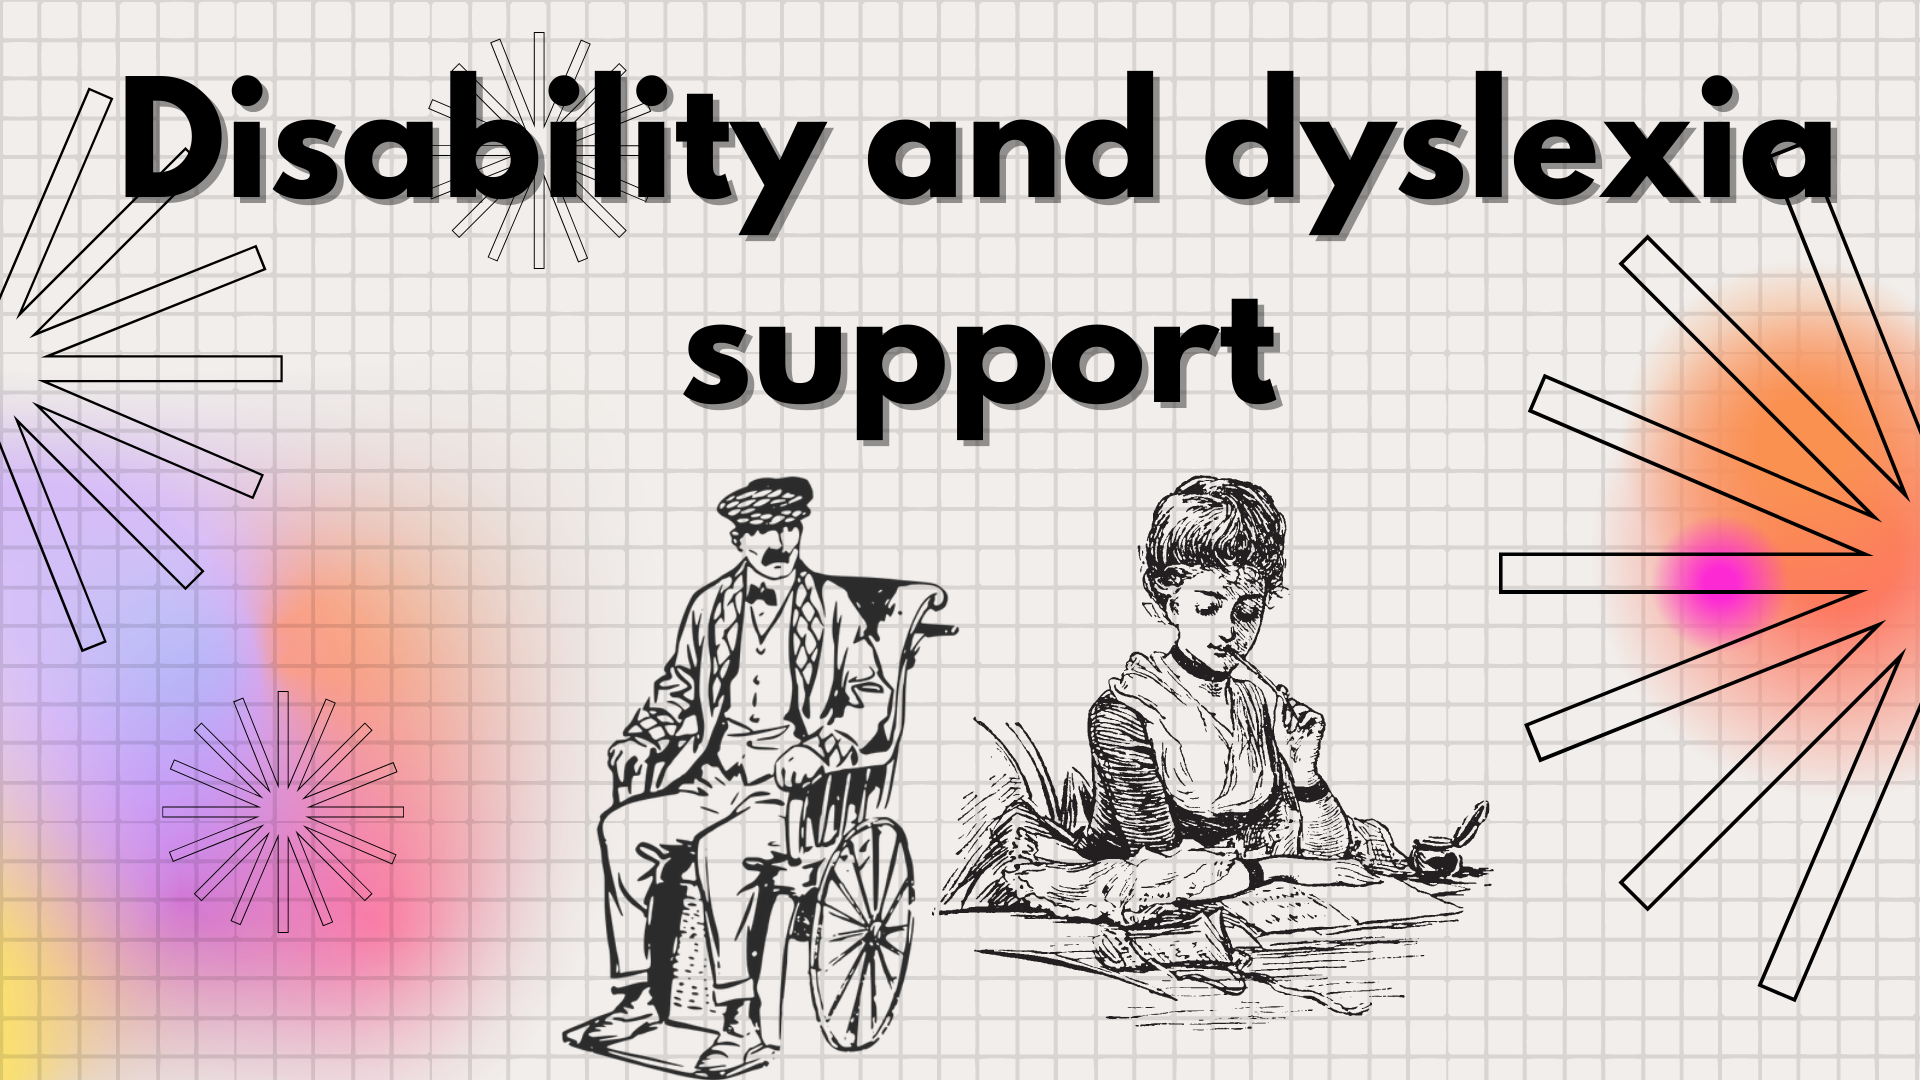 Link to the additional needs support video